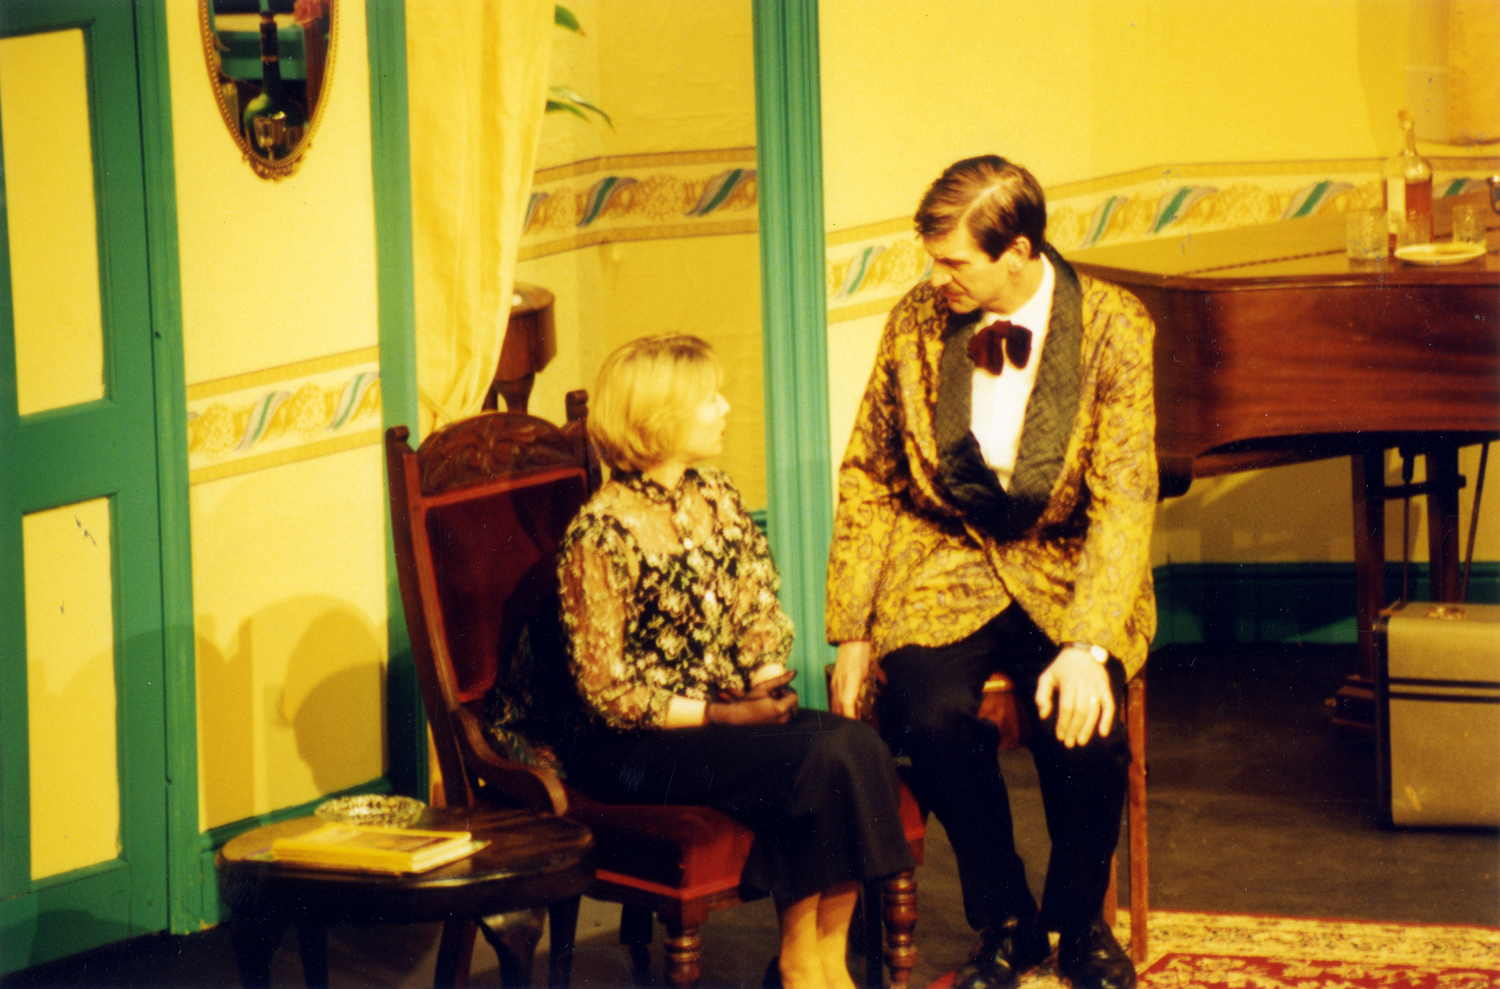 Present Laughter, Noel Coward, 27 April - 2 May, Jennifer Crossley